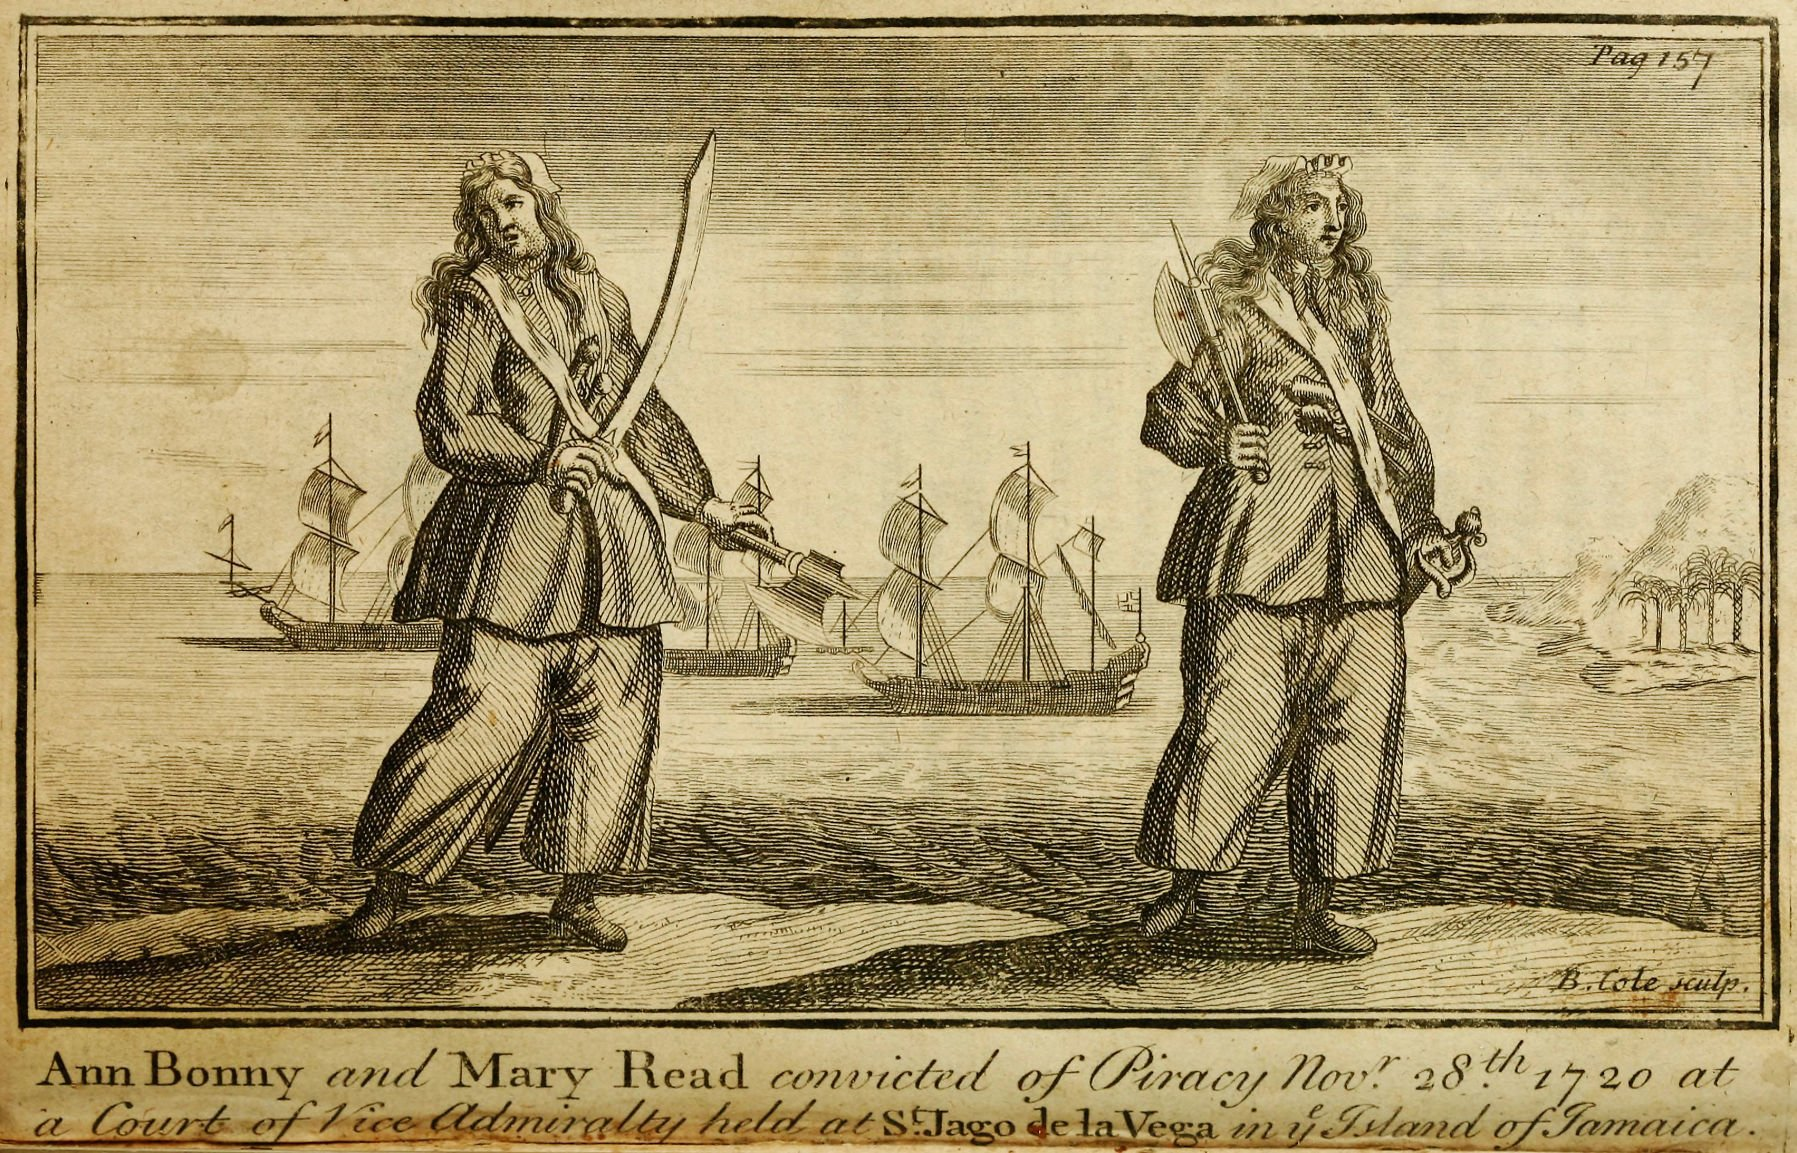 The true and false stories of Anne Bonny, pirate woman of the Caribbean